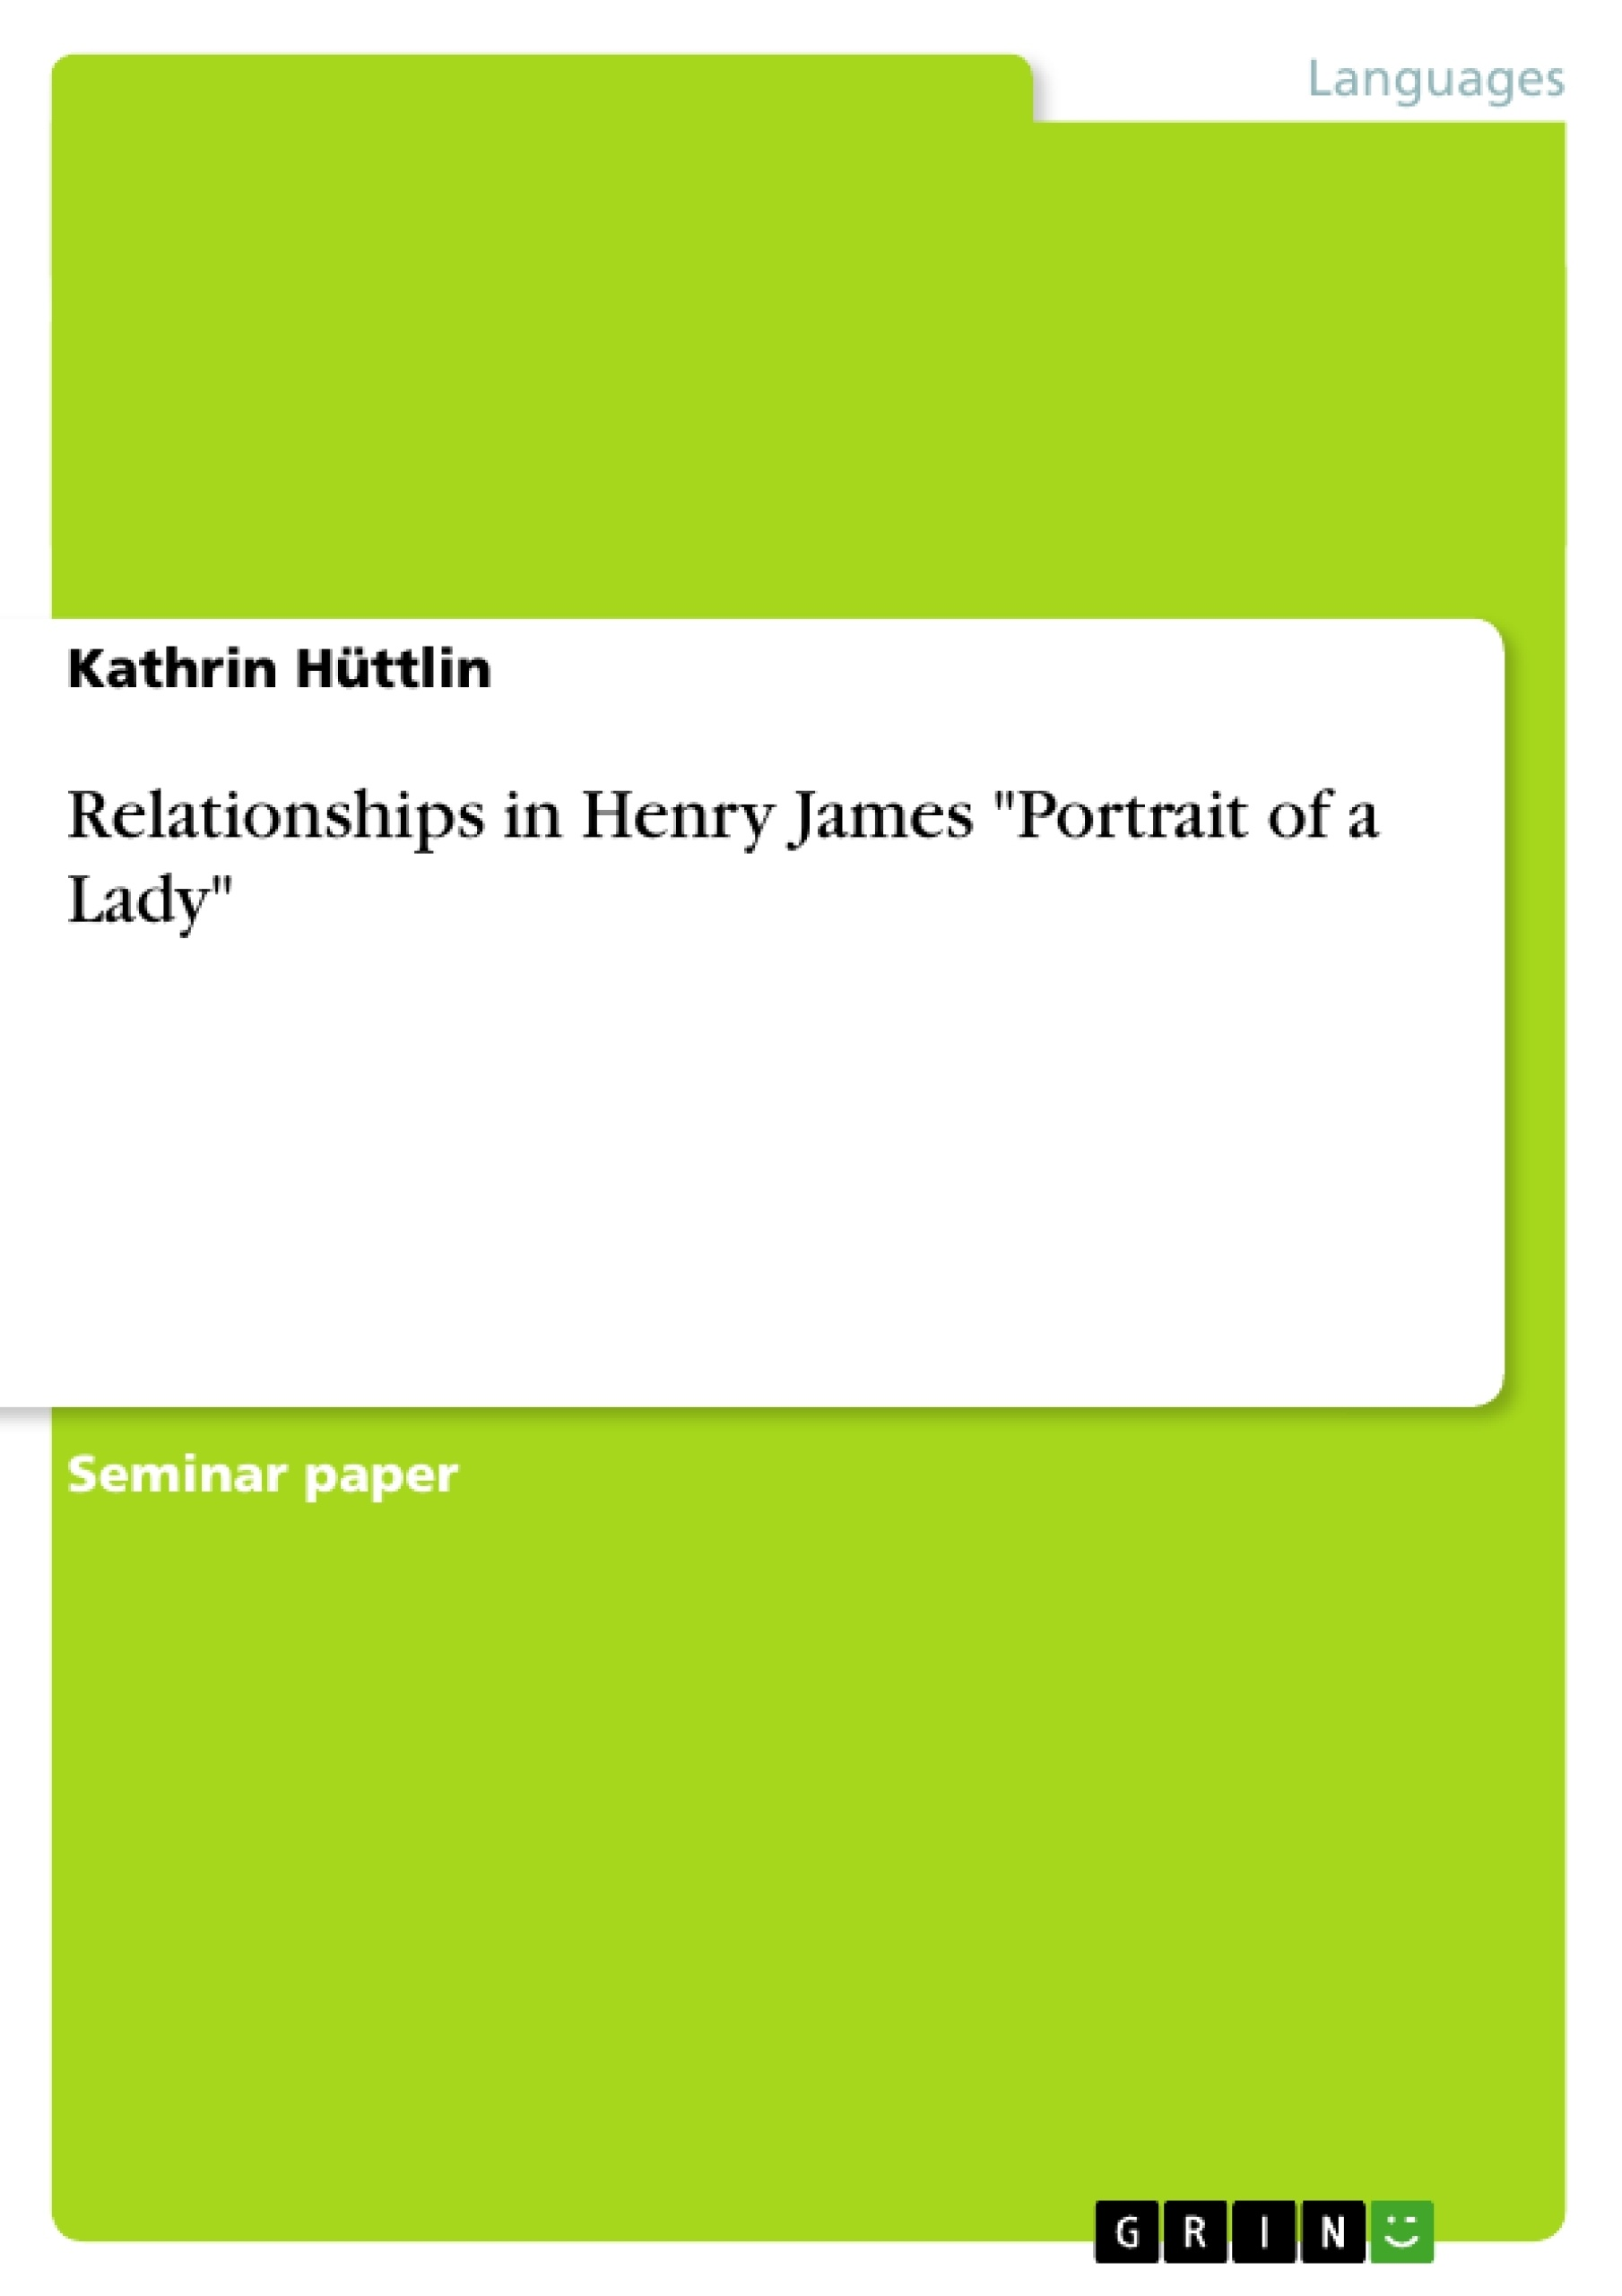 relationships in henry james portrait of a lady publish your relationships in henry james portrait of a lady publish your master s thesis bachelor s thesis essay or term paper